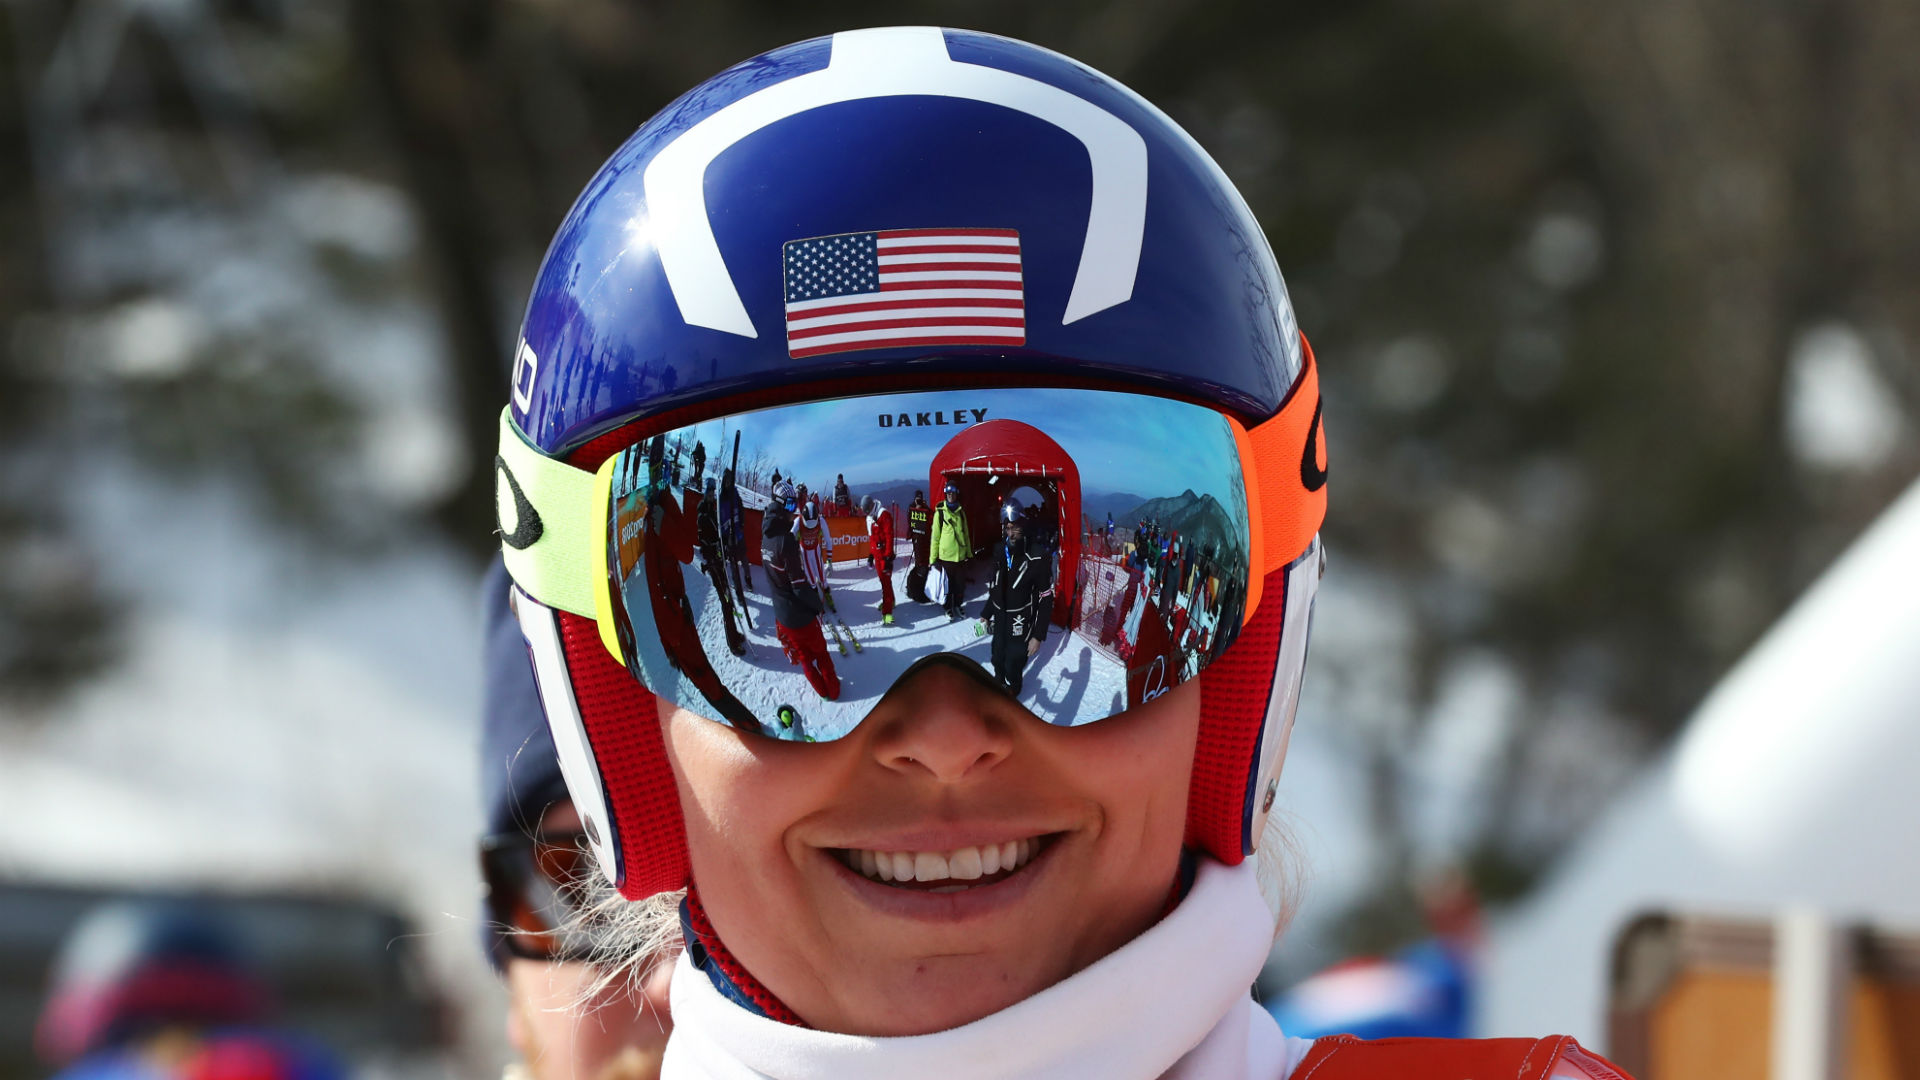 Vonn leads, Shiffrin in mix after downhill leg of combined